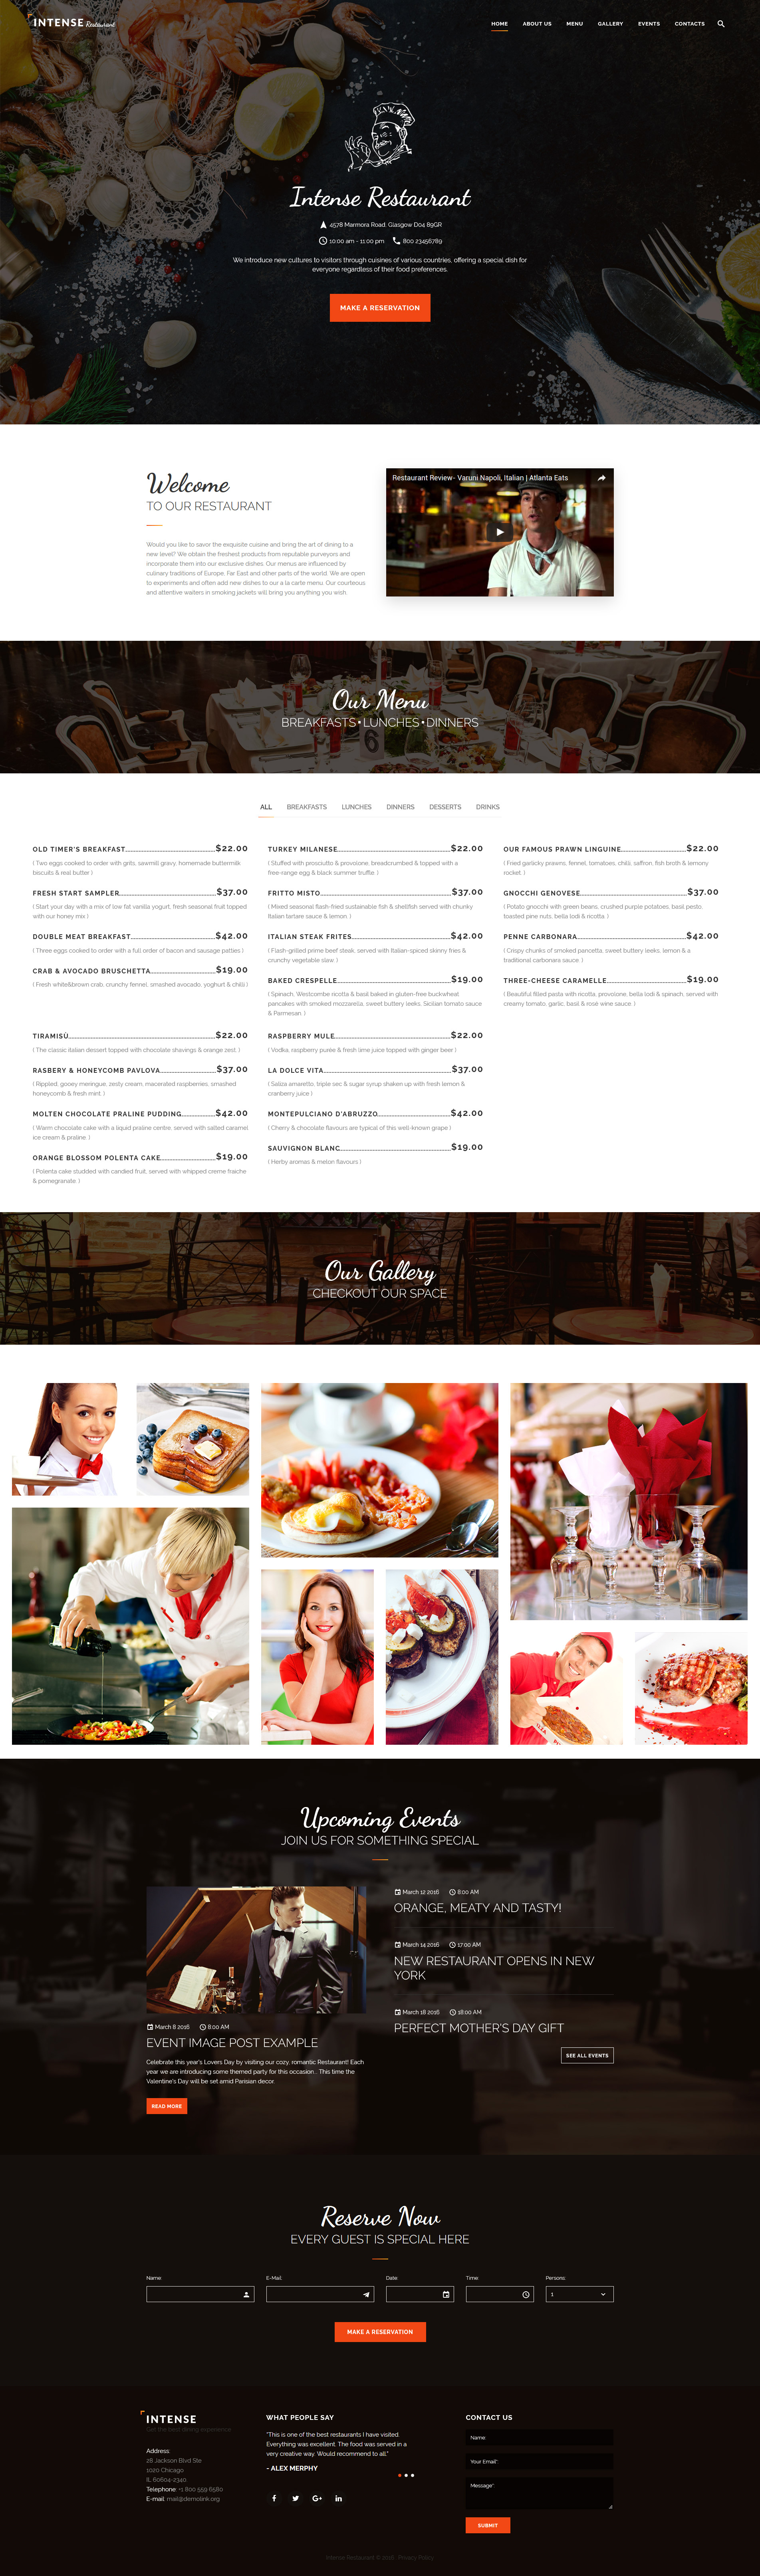 Intense Restaurant Website Template New Website Templates